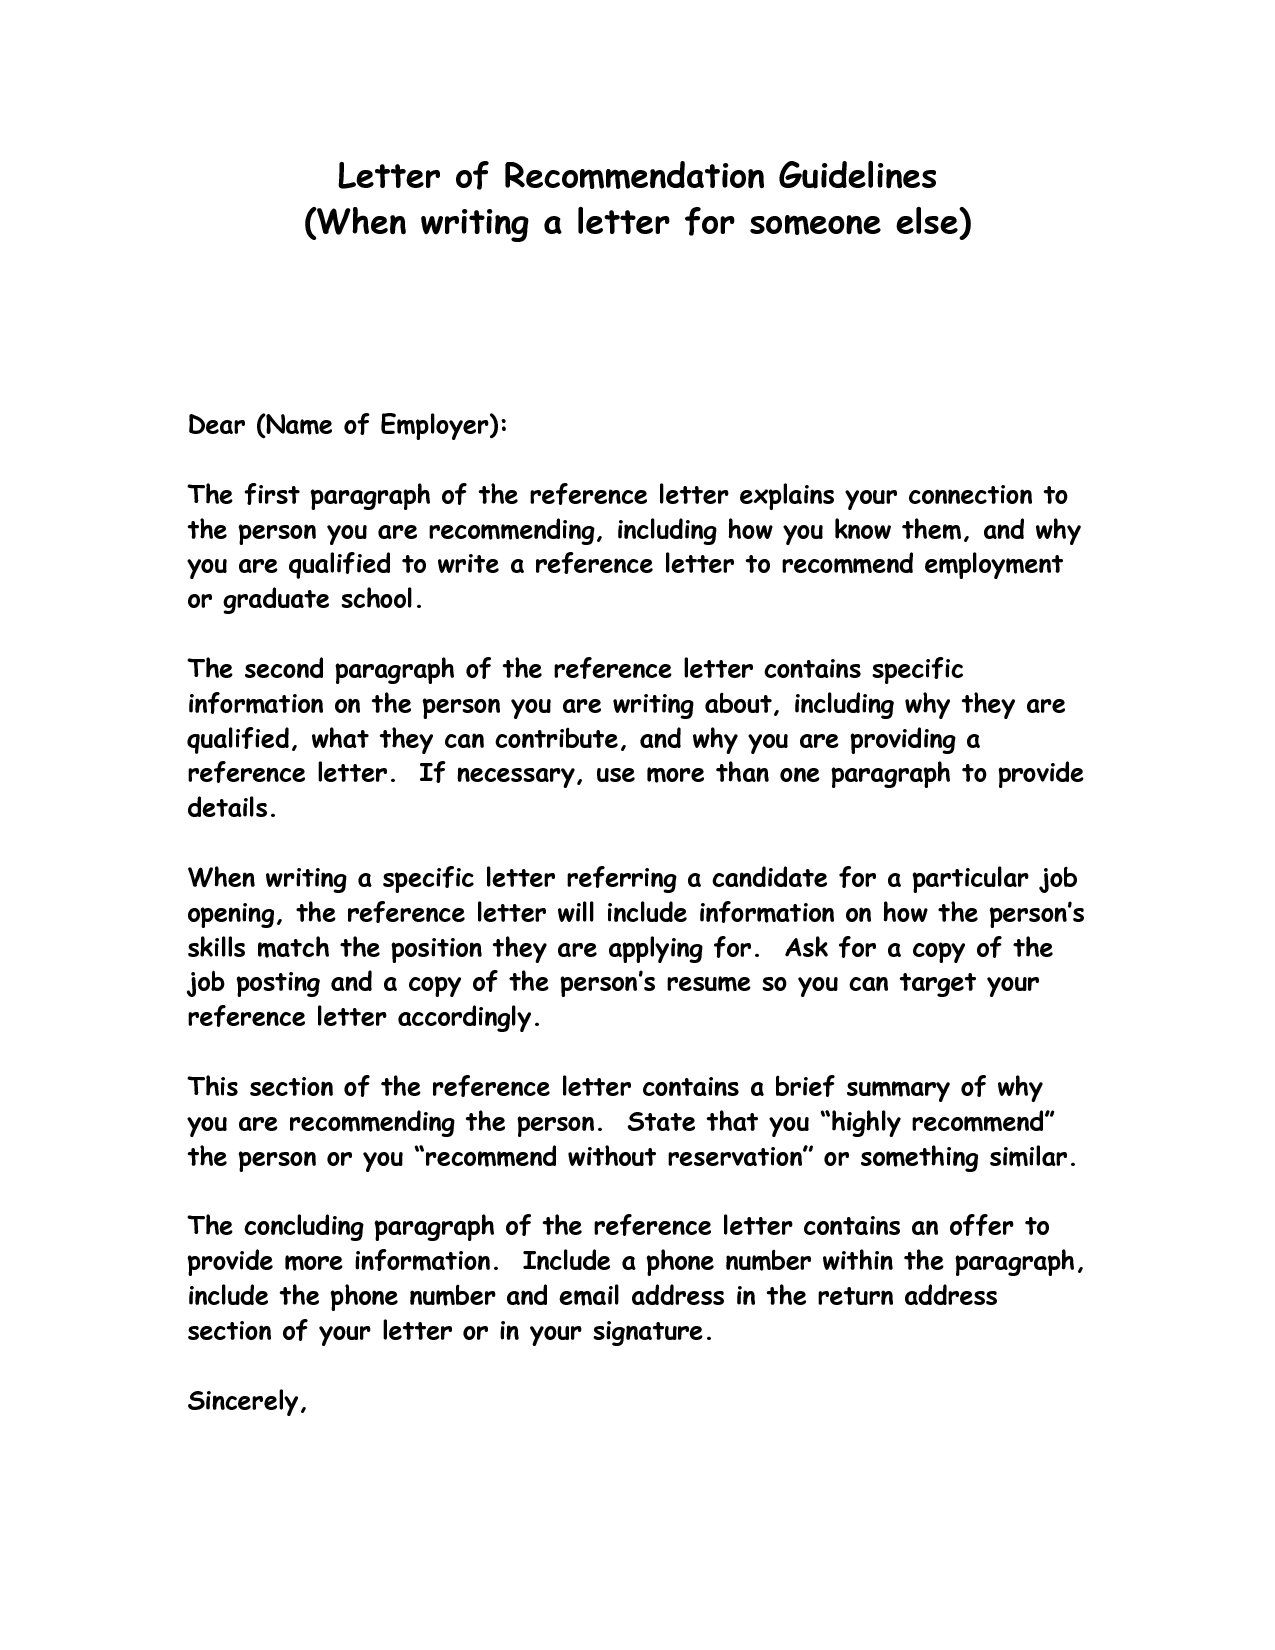 How To Write A Reference Letter | Letter | letter example